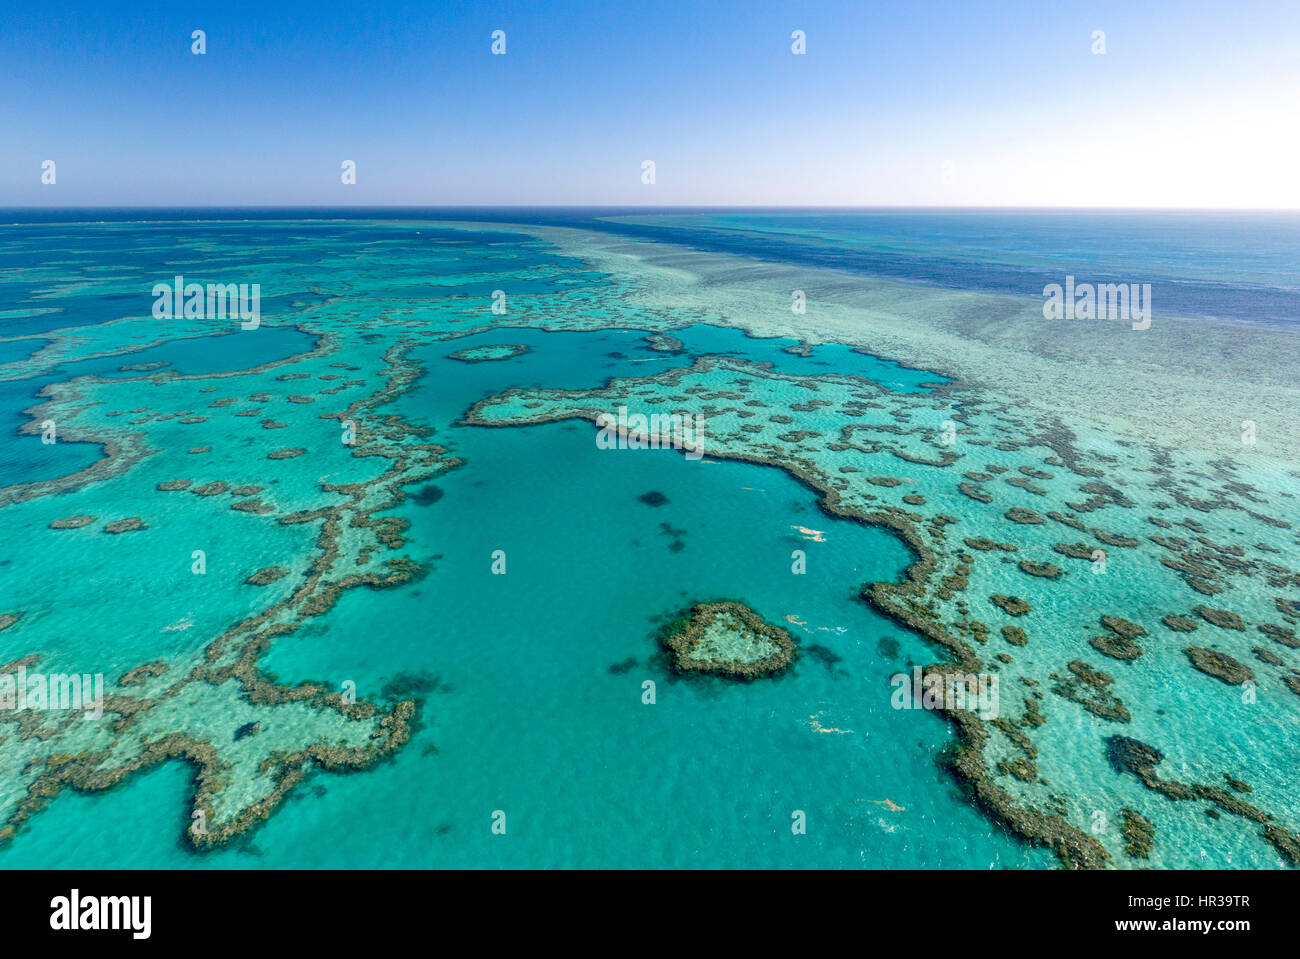 Korallenriff, Heart Reef, Teil von Hardy Reef, Outer Great Barrier Reef, Queensland, Australien Stockbild